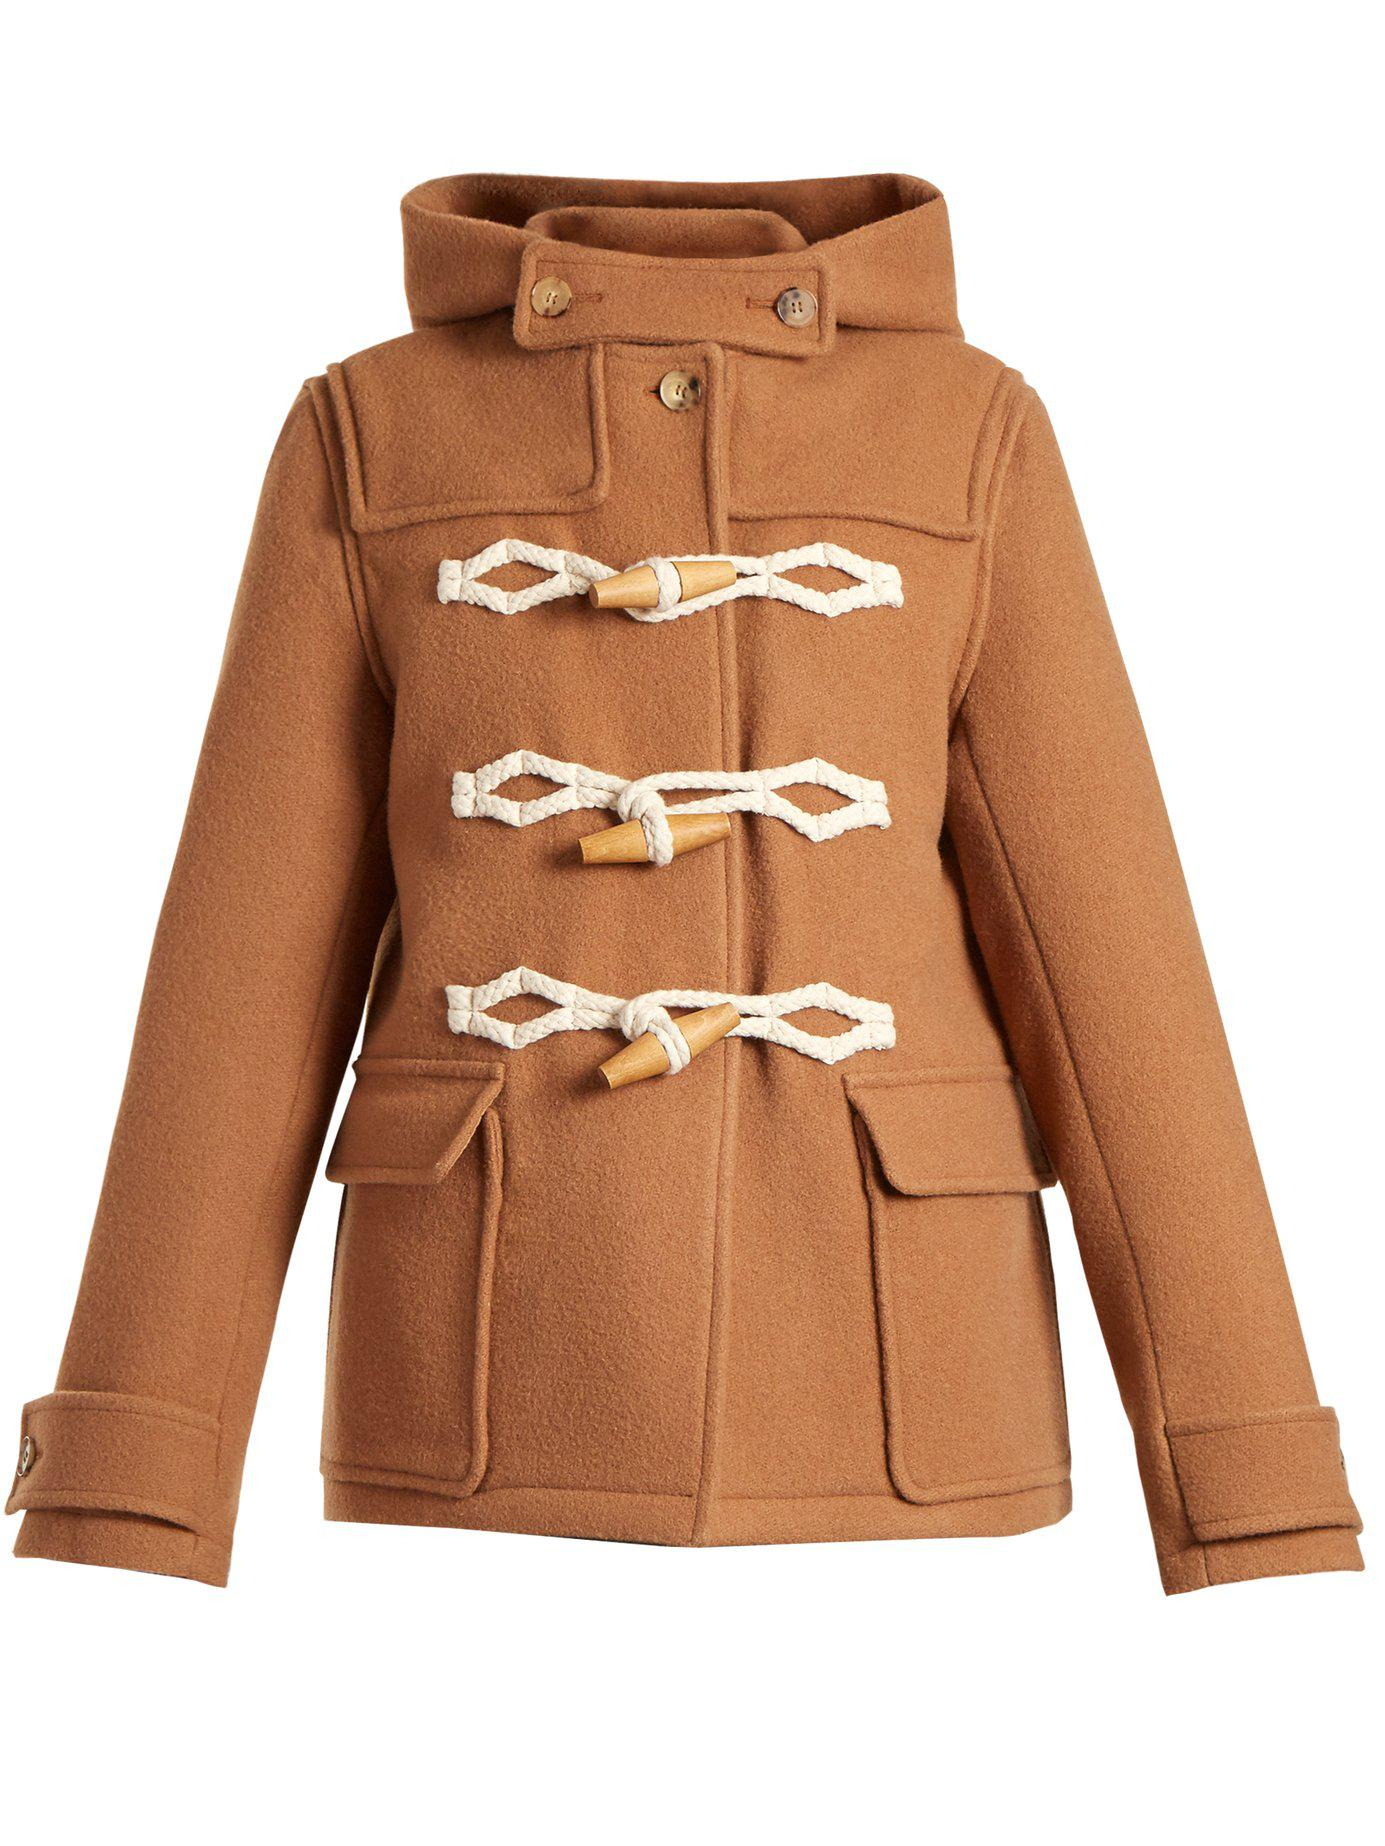 70ab497d9d79 Lyst - J.W. Anderson Hooded Duffle Coat in Brown